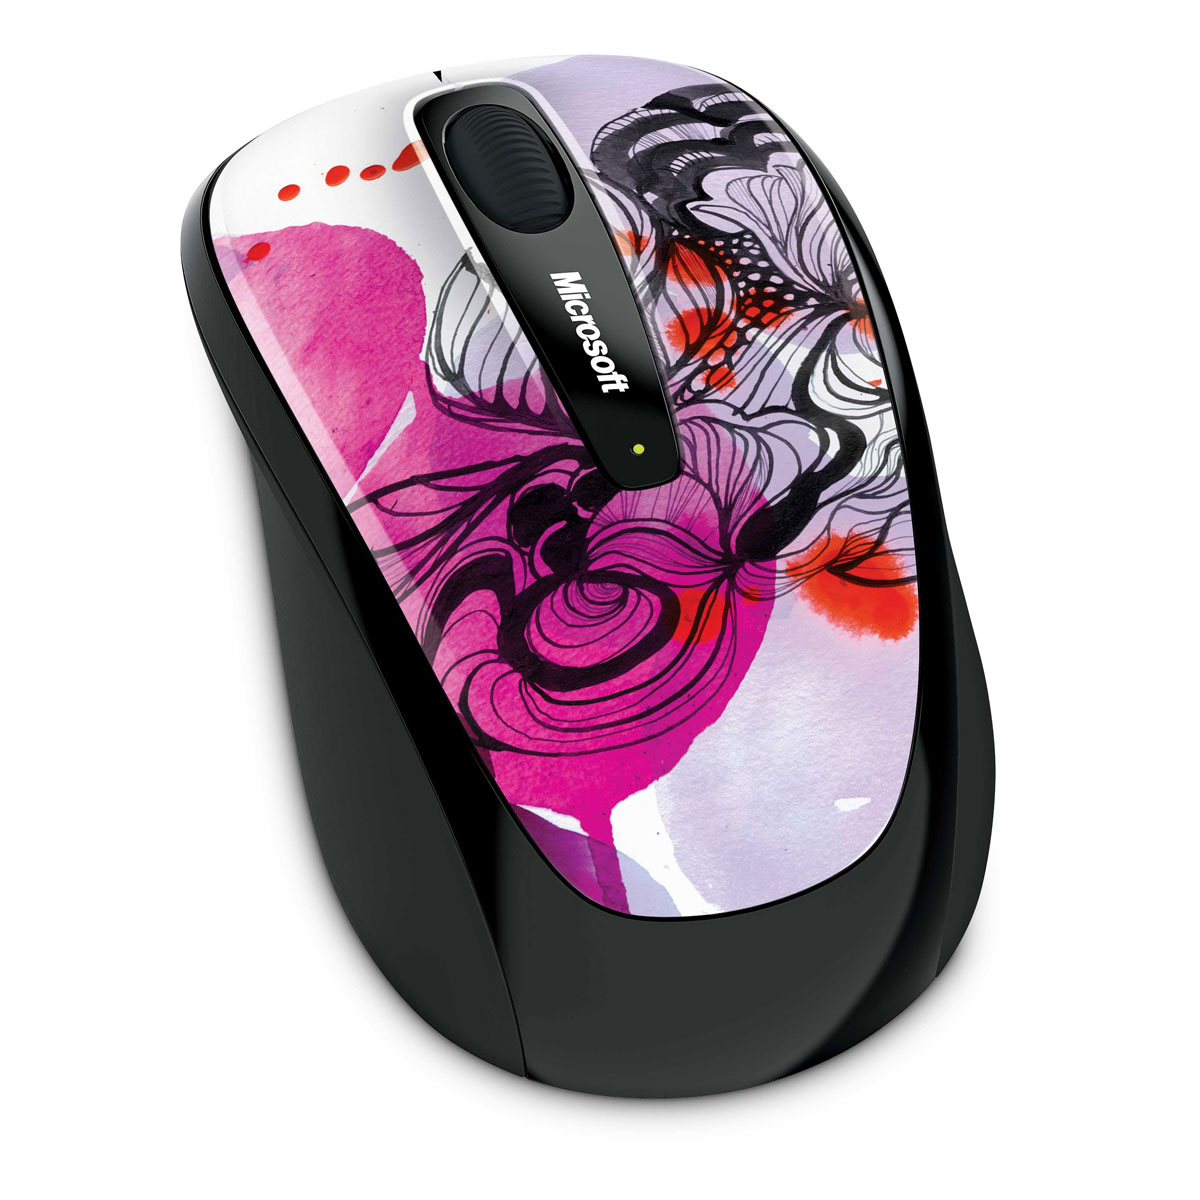 microsoft wireless mobile mouse 3500 artist edition stina persson gmf 00188 achat vente. Black Bedroom Furniture Sets. Home Design Ideas